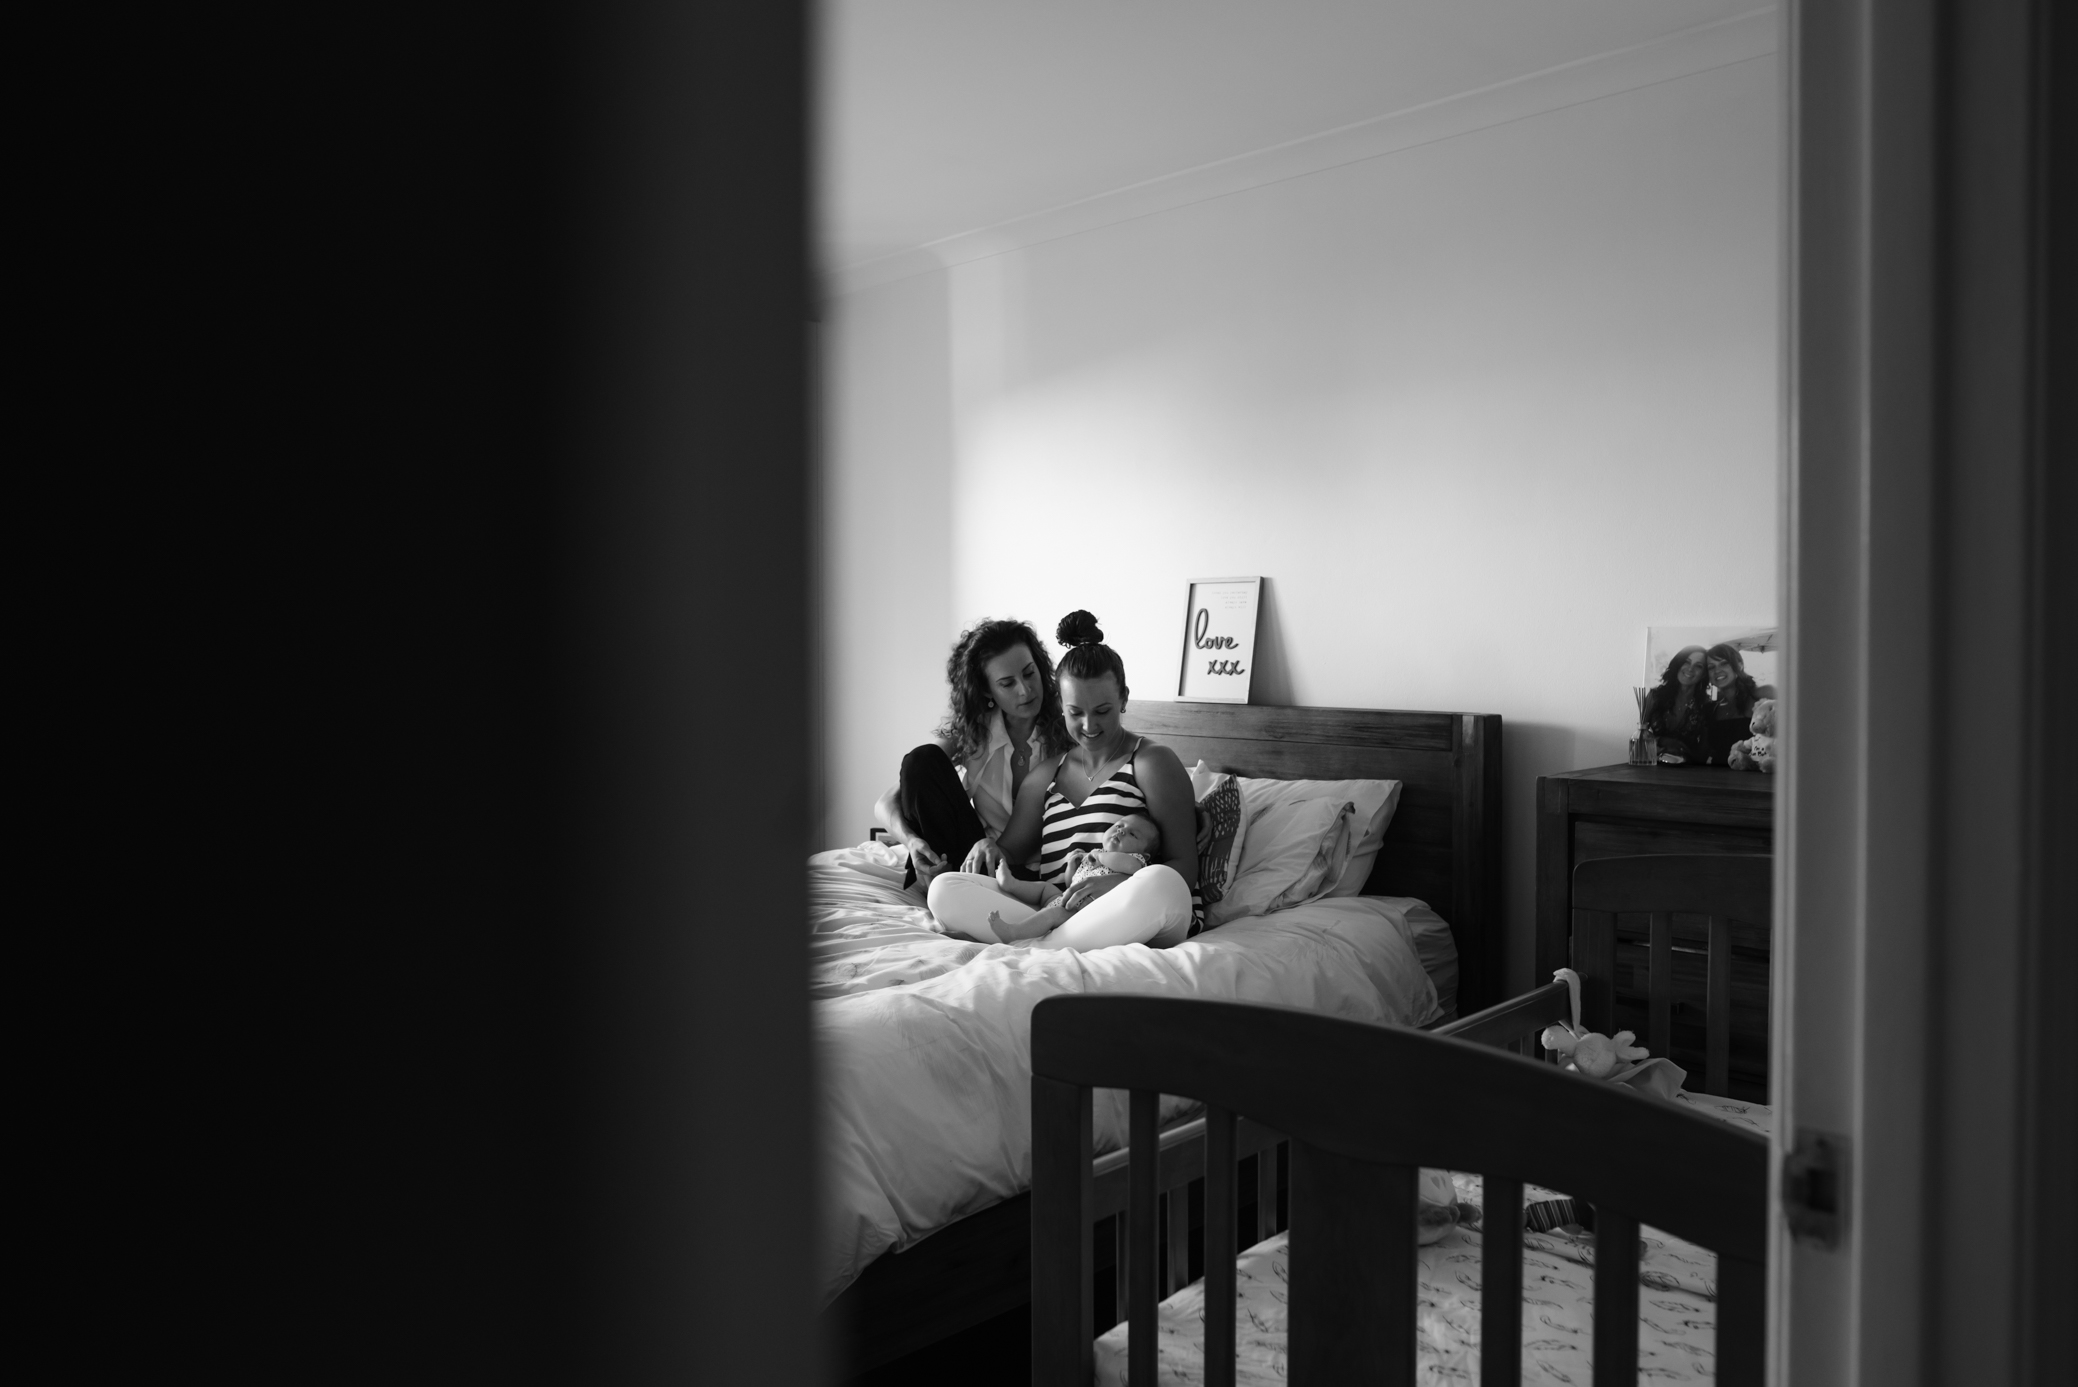 sydney-family-photographer-a-family-embraces-and snuggles-with-their-newborn-baby